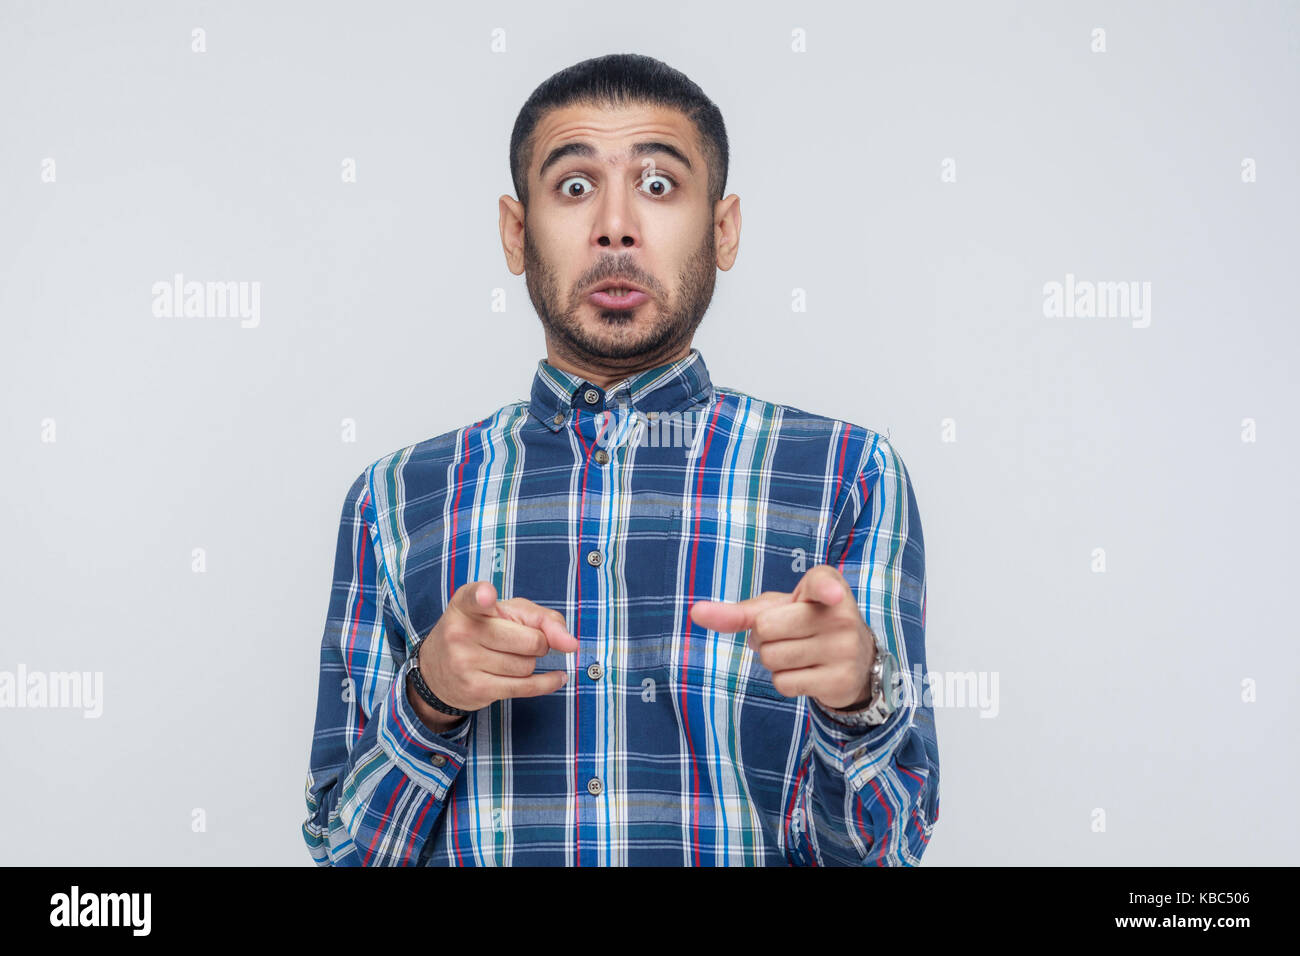 The seriosly man, wearing blue shirt, opening mouths widely, having surprised shocked looks, pointing finger at Stock Photo